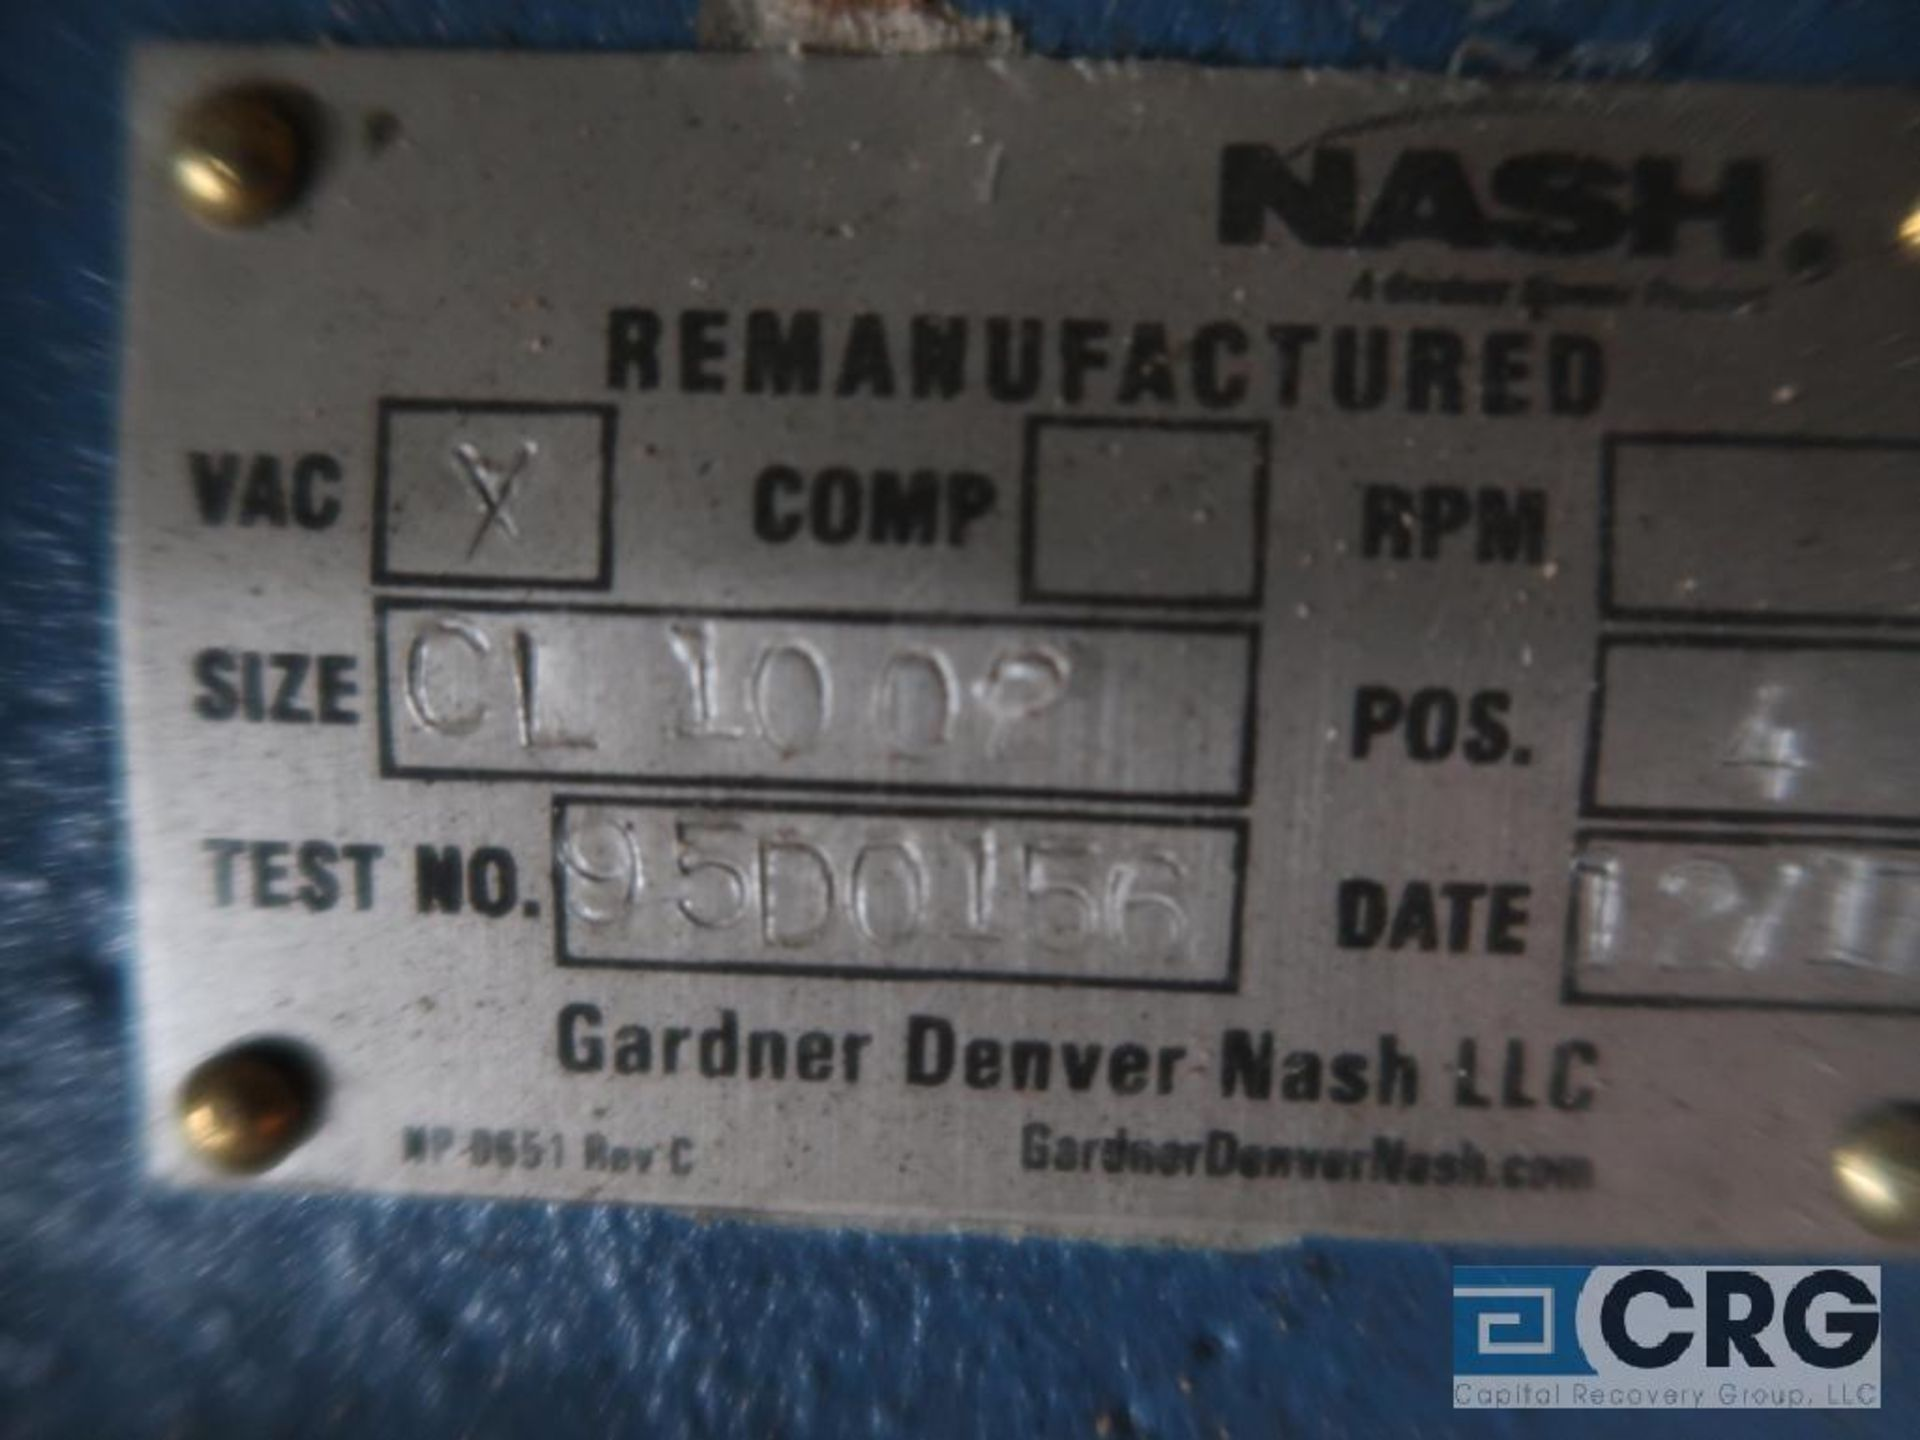 Nash CL1002 vacuum pump, remanufactured year 2007, s/n 85U0918 (Off Site Warehouse) - Image 2 of 2